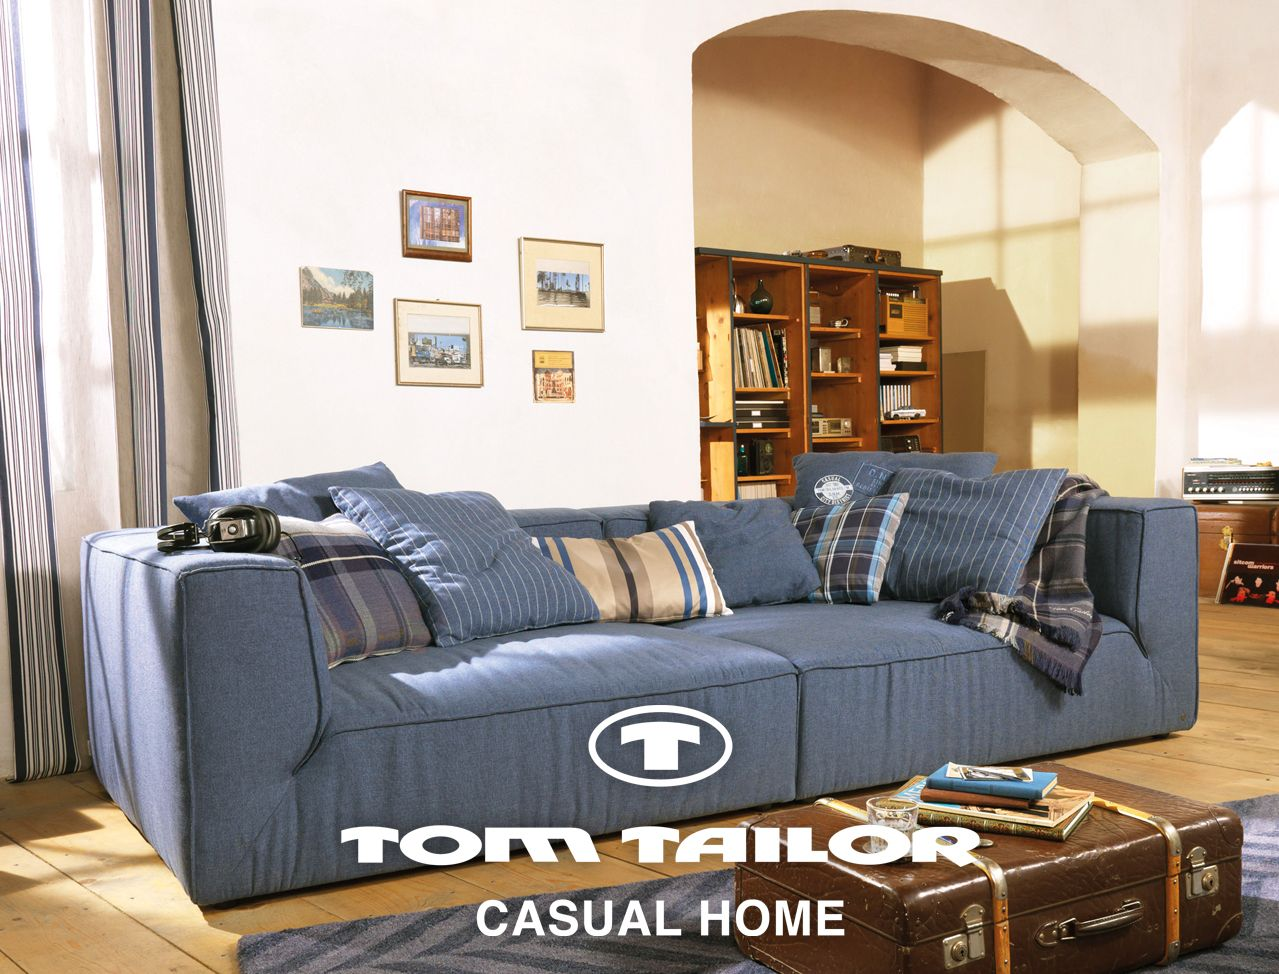 Huge Big Cube Sofa Tom Tailor Www Tom Tailor Com Home